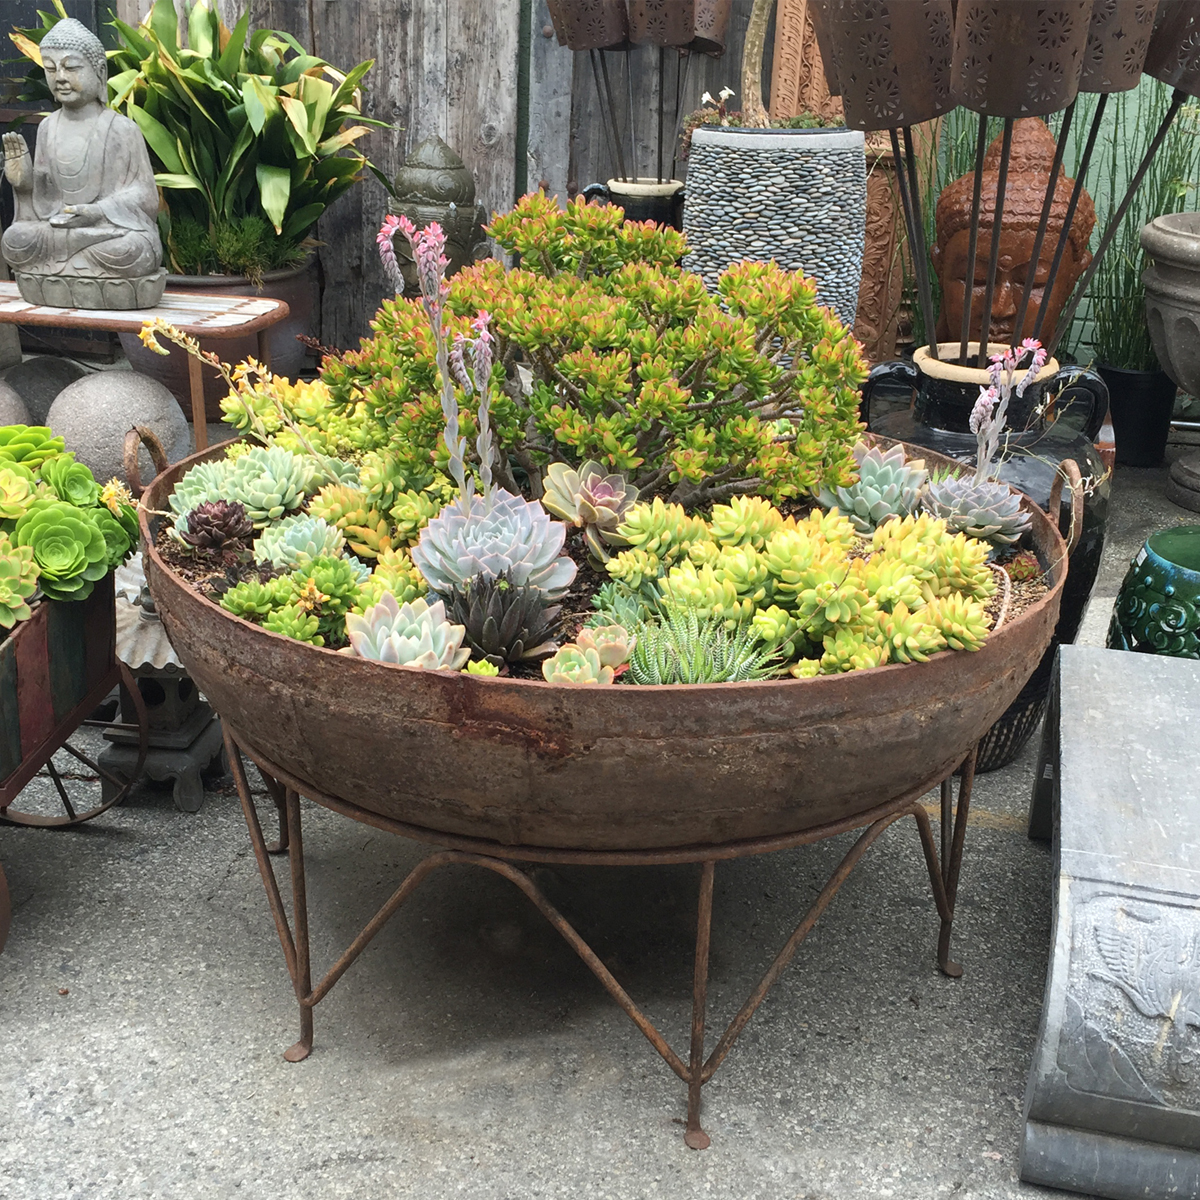 Iron Kadai Bowl With Succulents Furniture Mix Furniture